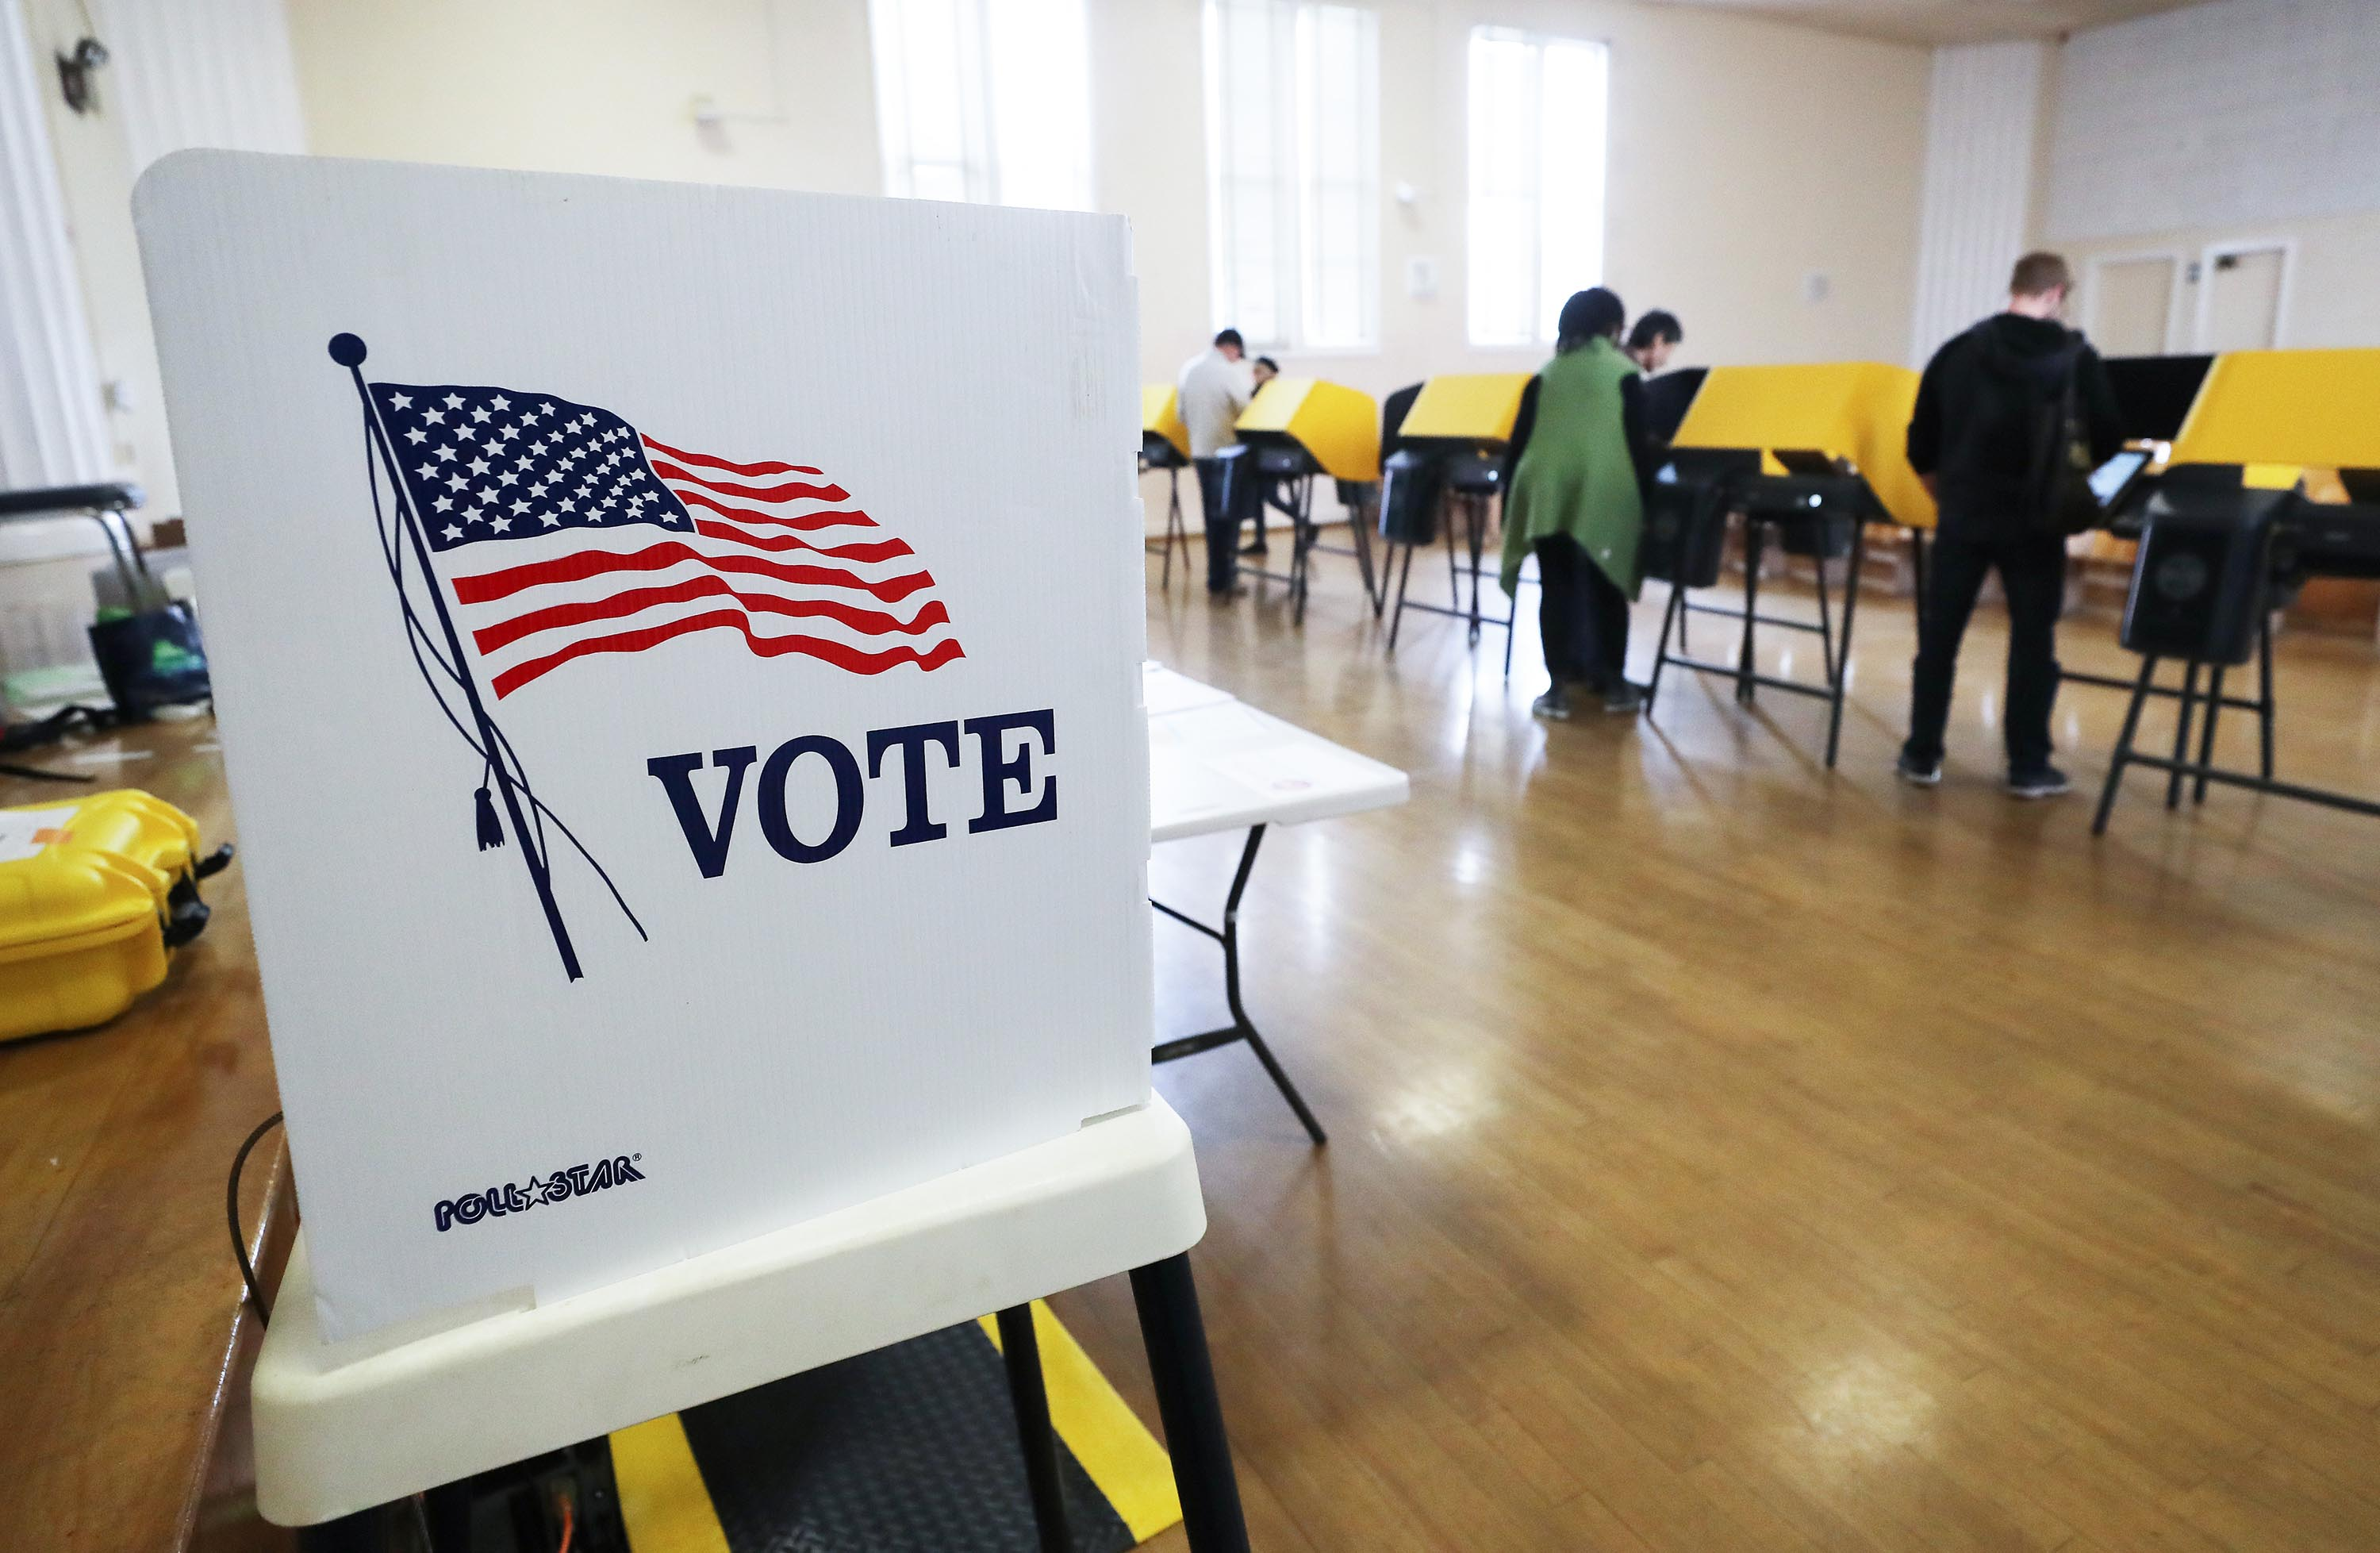 READ: Michigan judge's ruling striking down ban on open carry of guns at polling places on Election Day